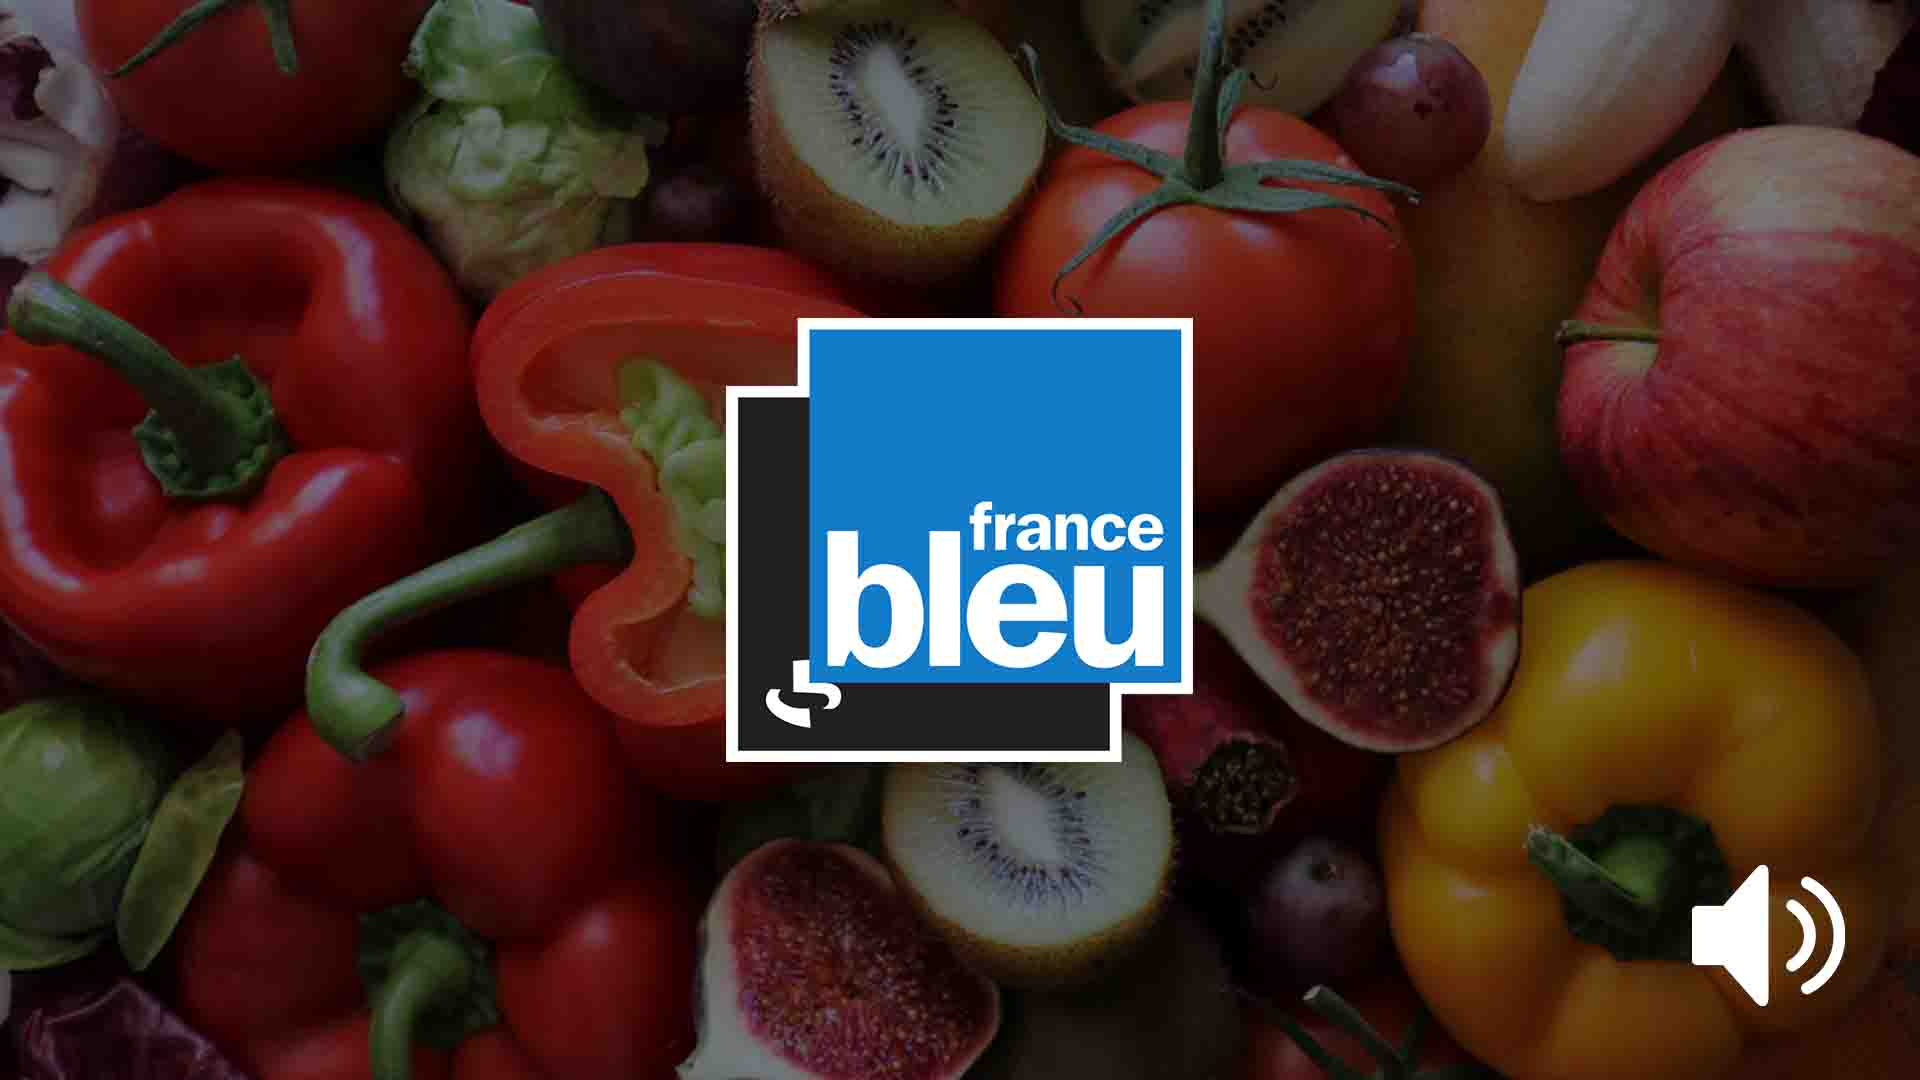 emission radio france bleu fruits legumes quotidien